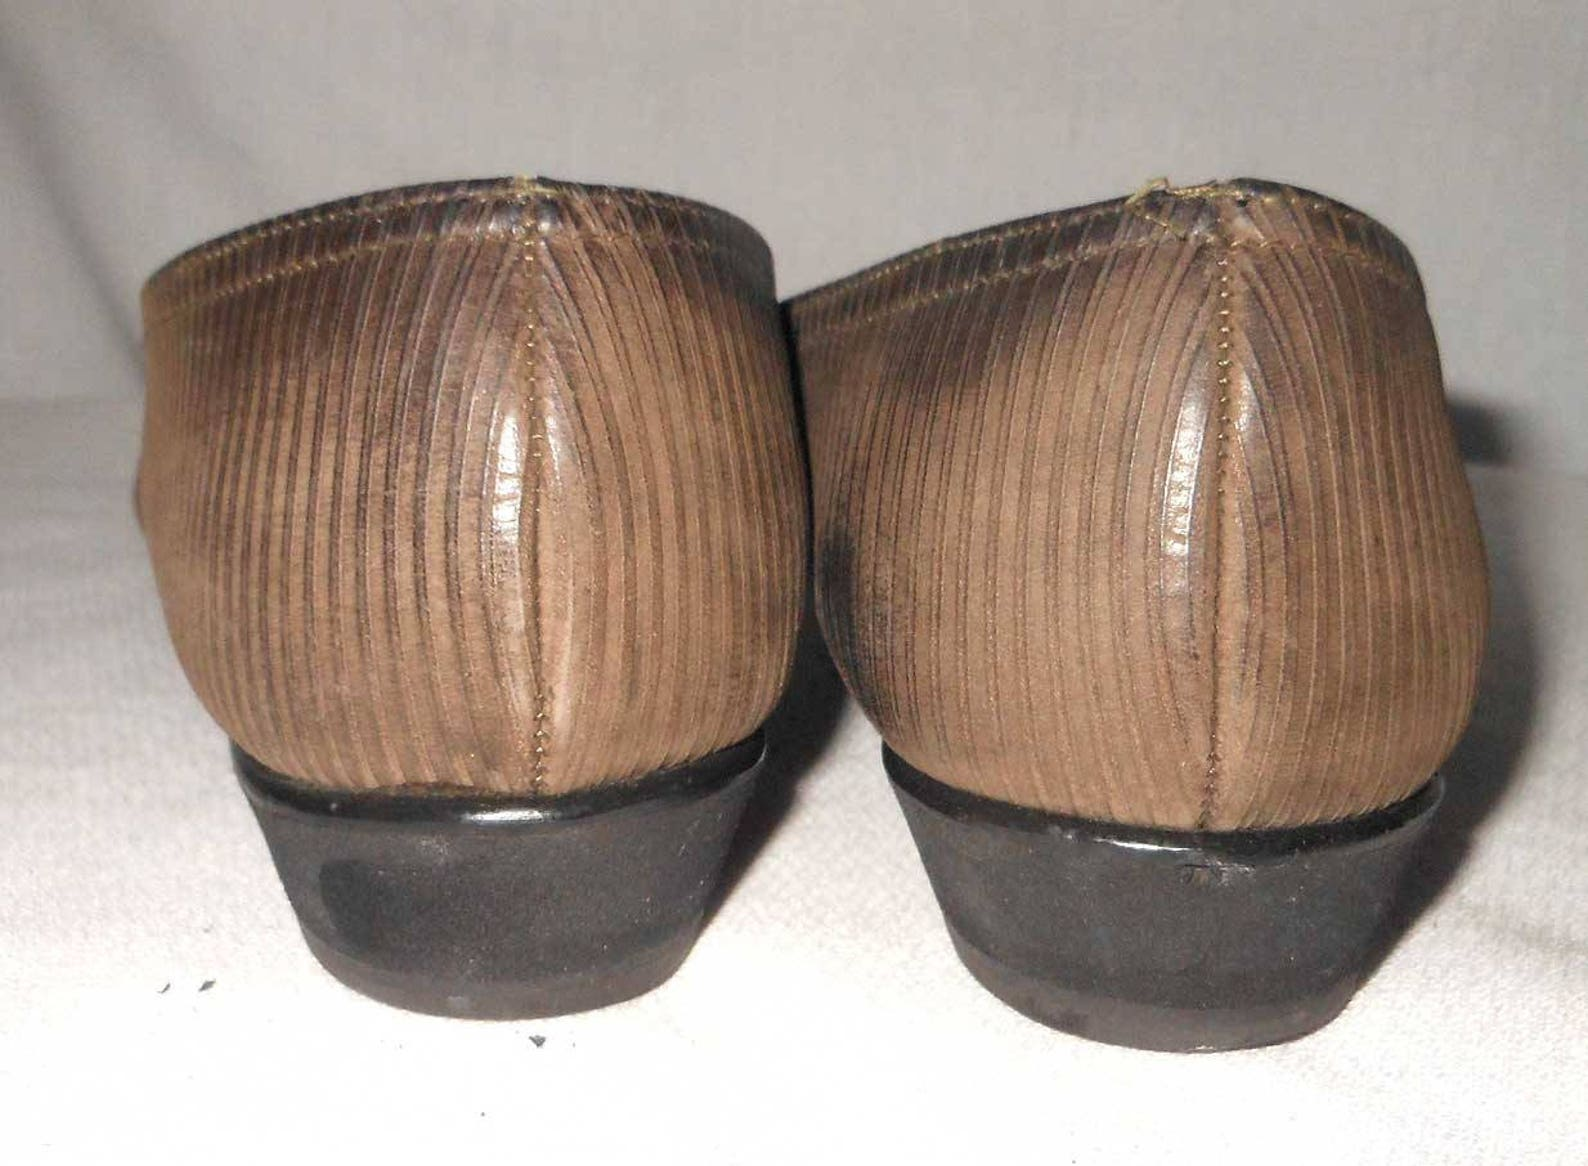 wedge flats salvatore ferragamo pumps ribbed brown leather ballet pointy 9 3a woman shoes